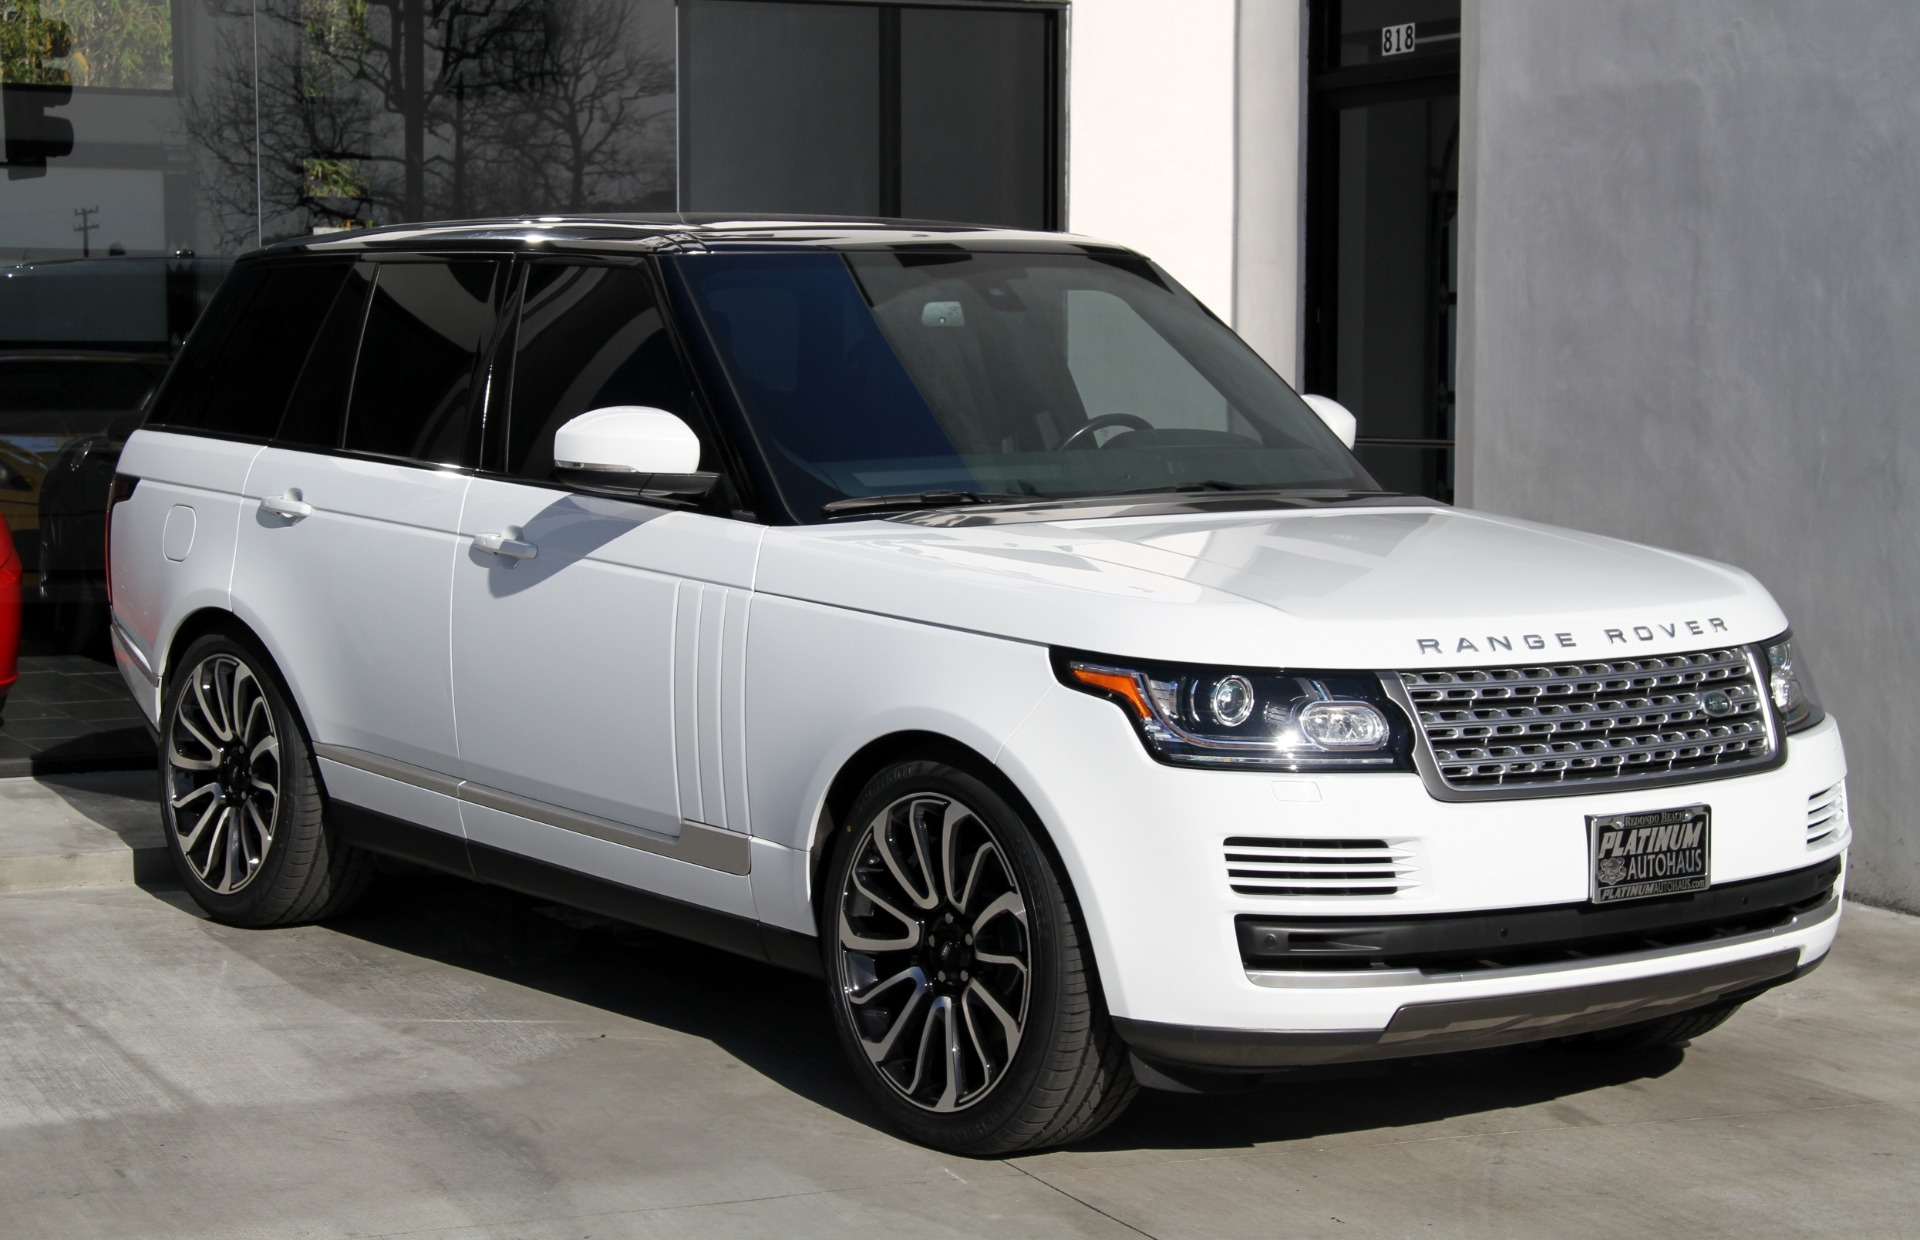 2014 land rover range rover hse stock 6041 for sale near redondo beach ca ca land rover dealer. Black Bedroom Furniture Sets. Home Design Ideas